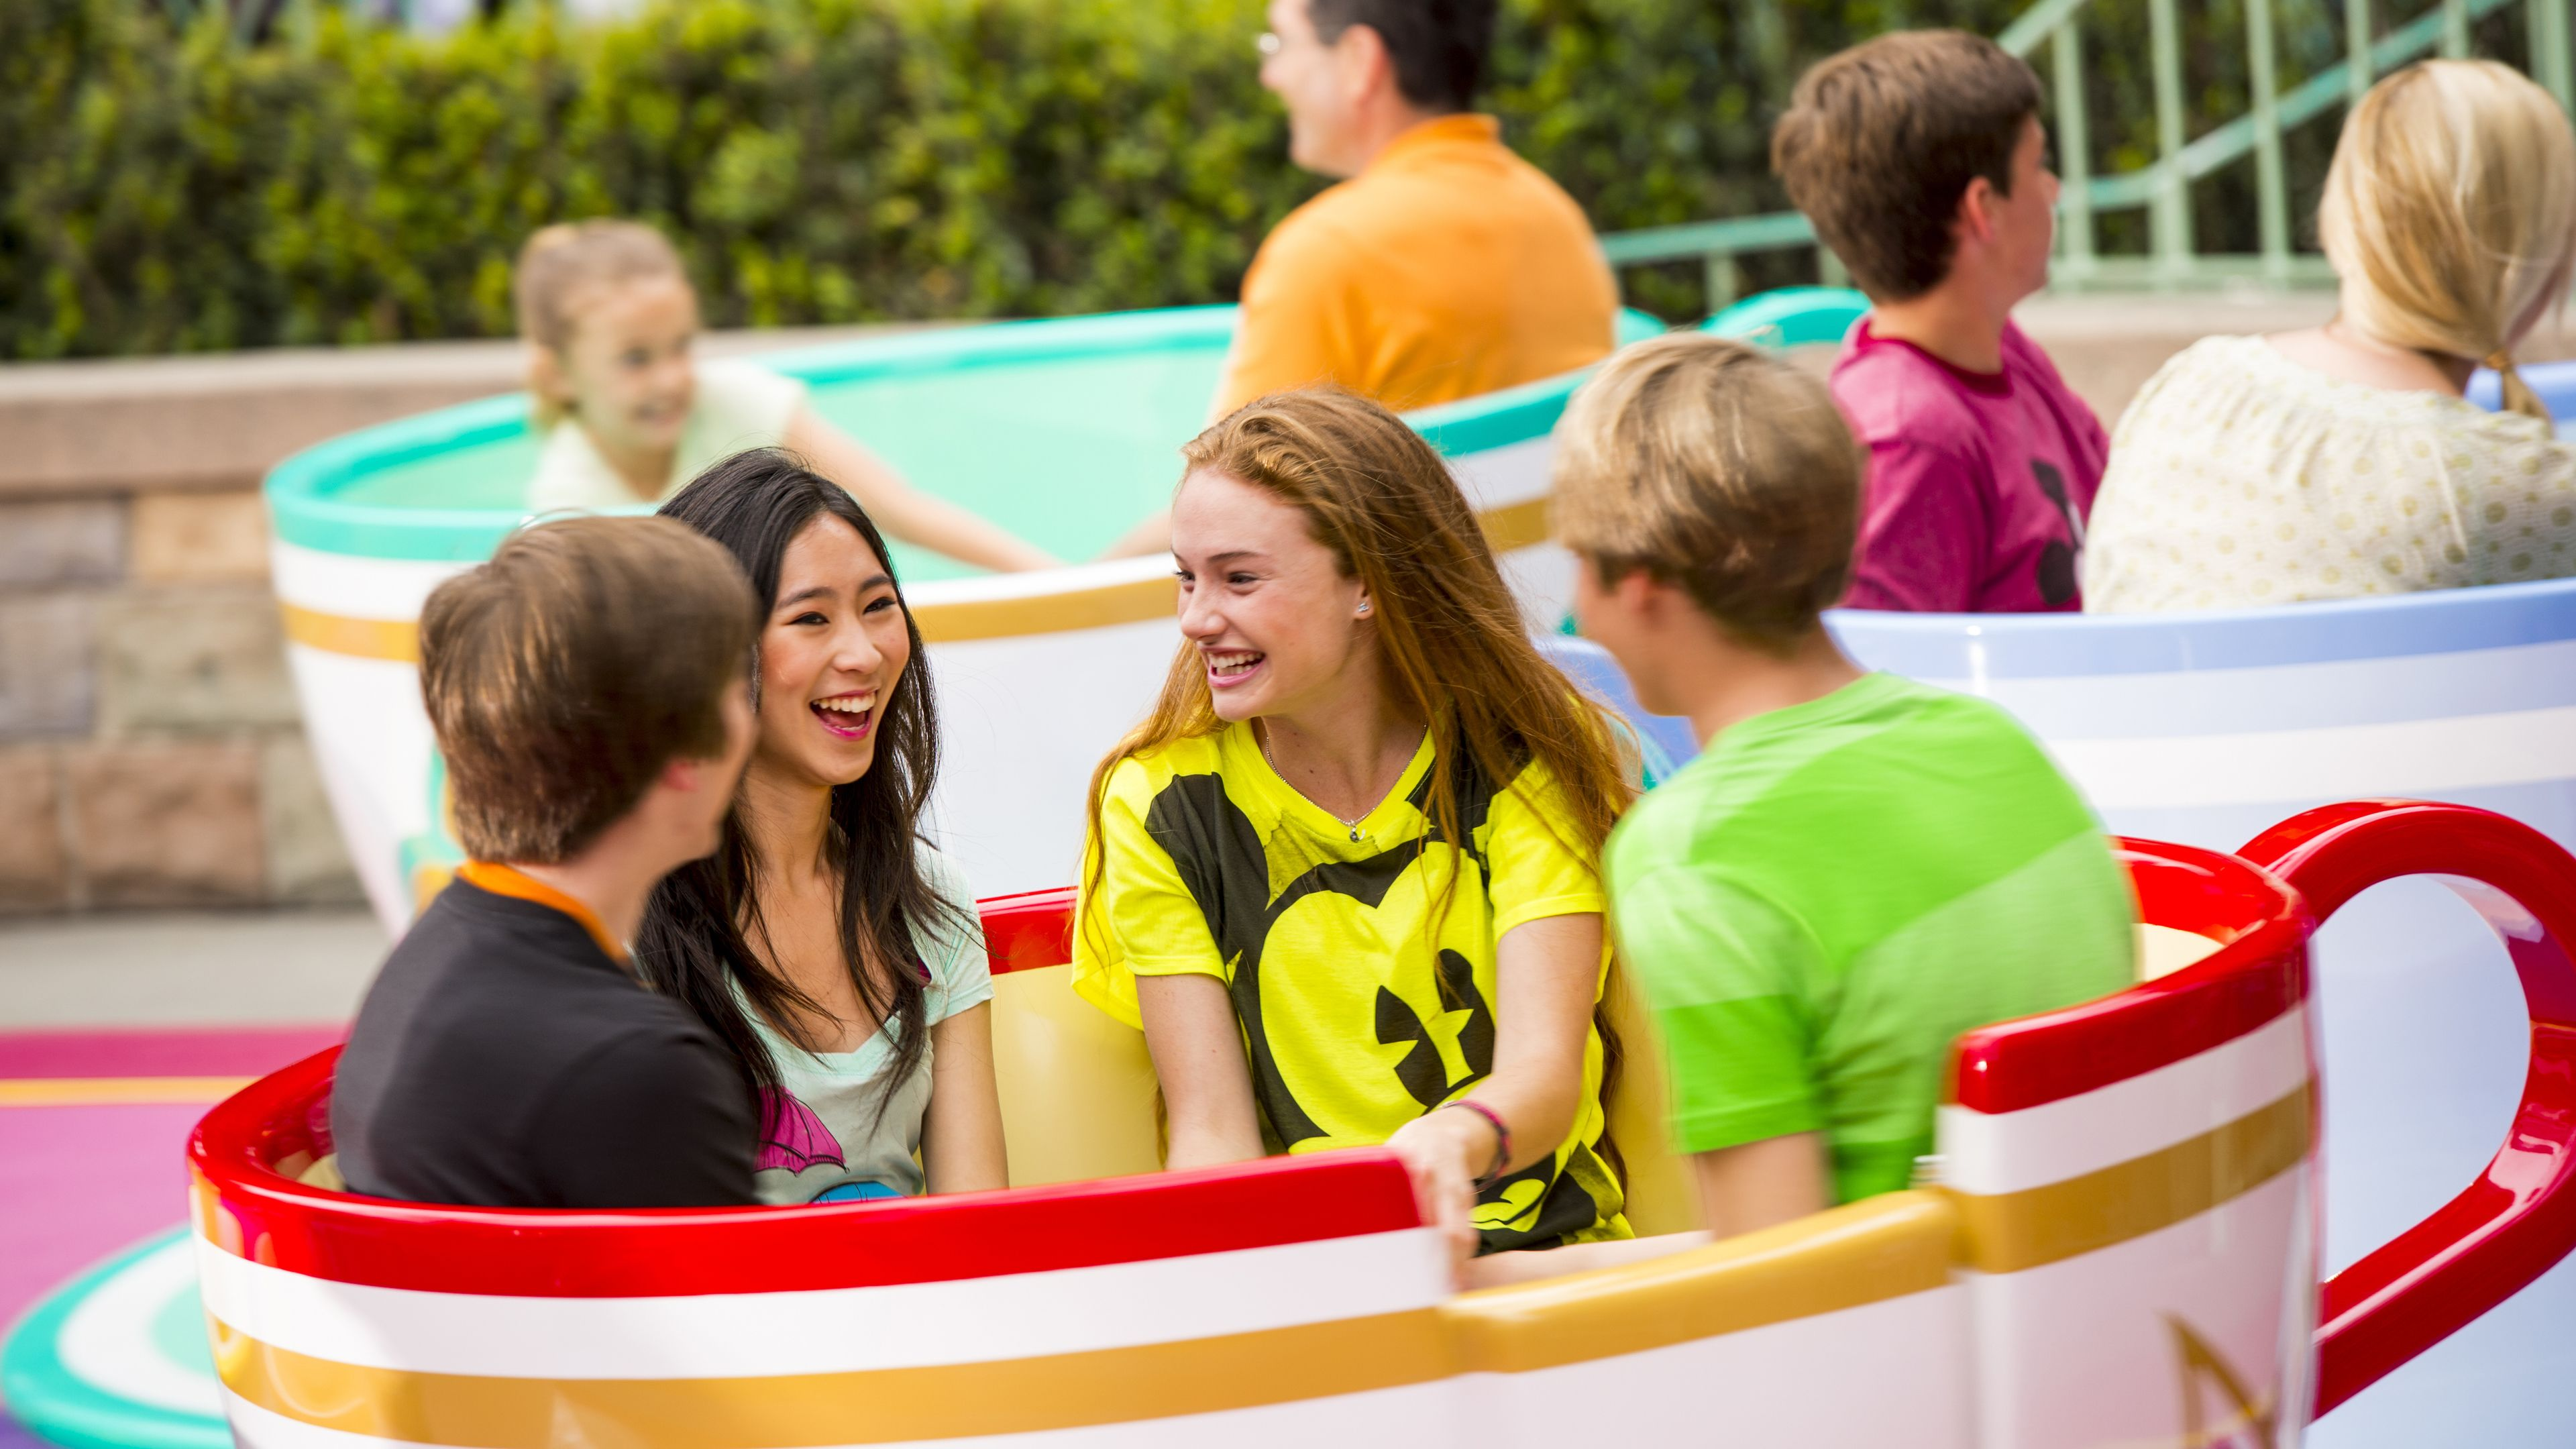 Four young adults in a teacup amusement ride at Disneyland